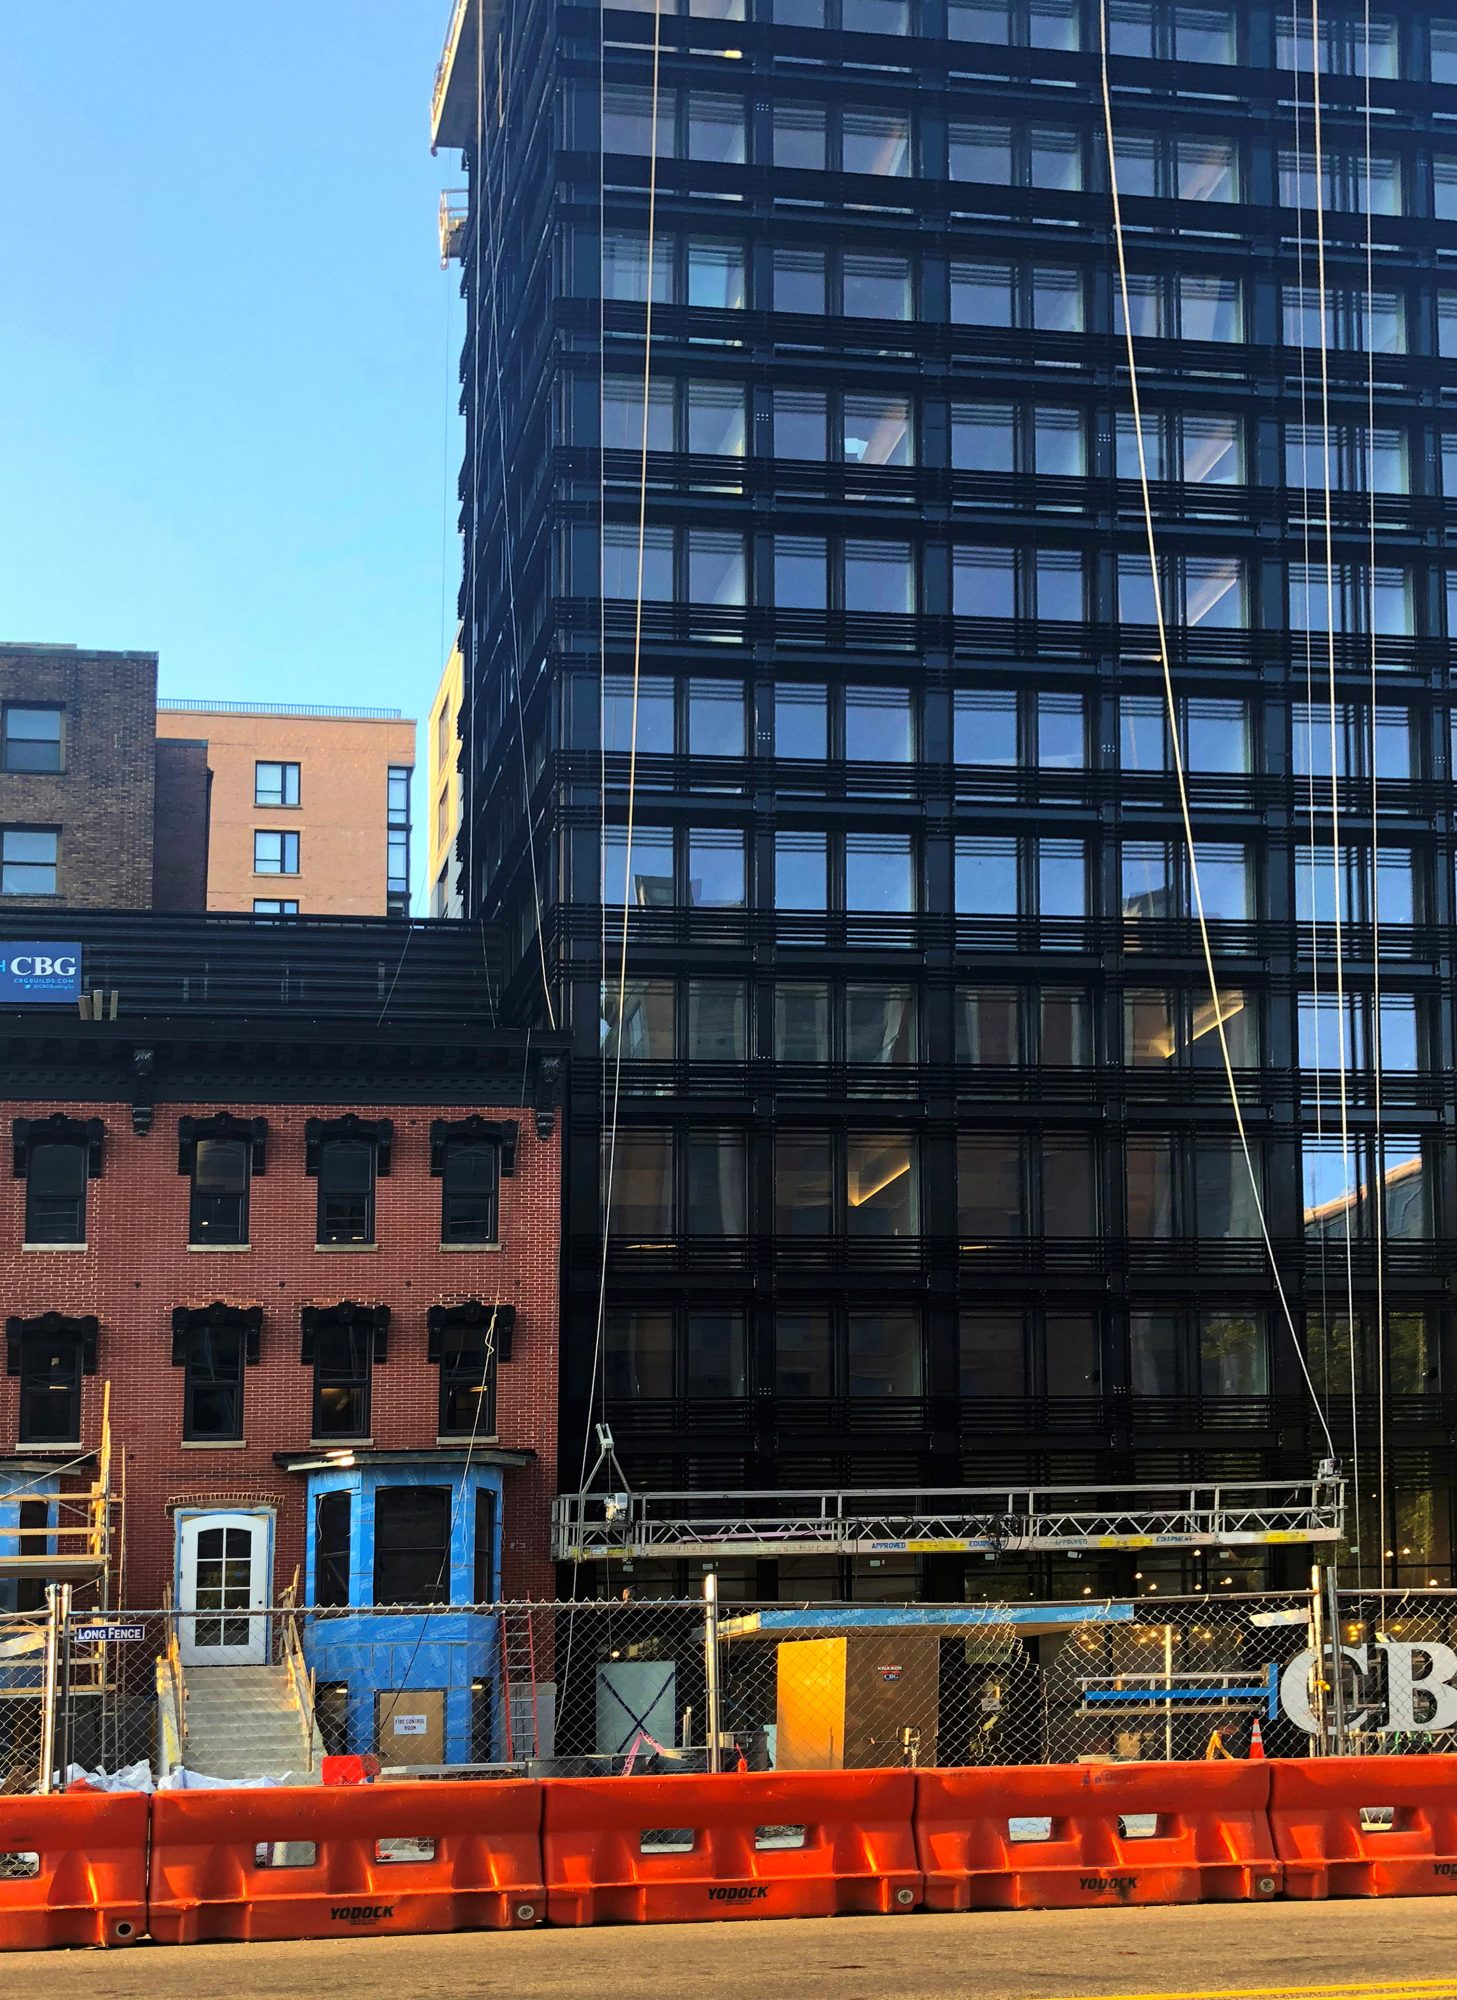 Moxy Moxy Hotel nearing completion - featuring INTUS Windows in the main building and in the neighboring restored historic building